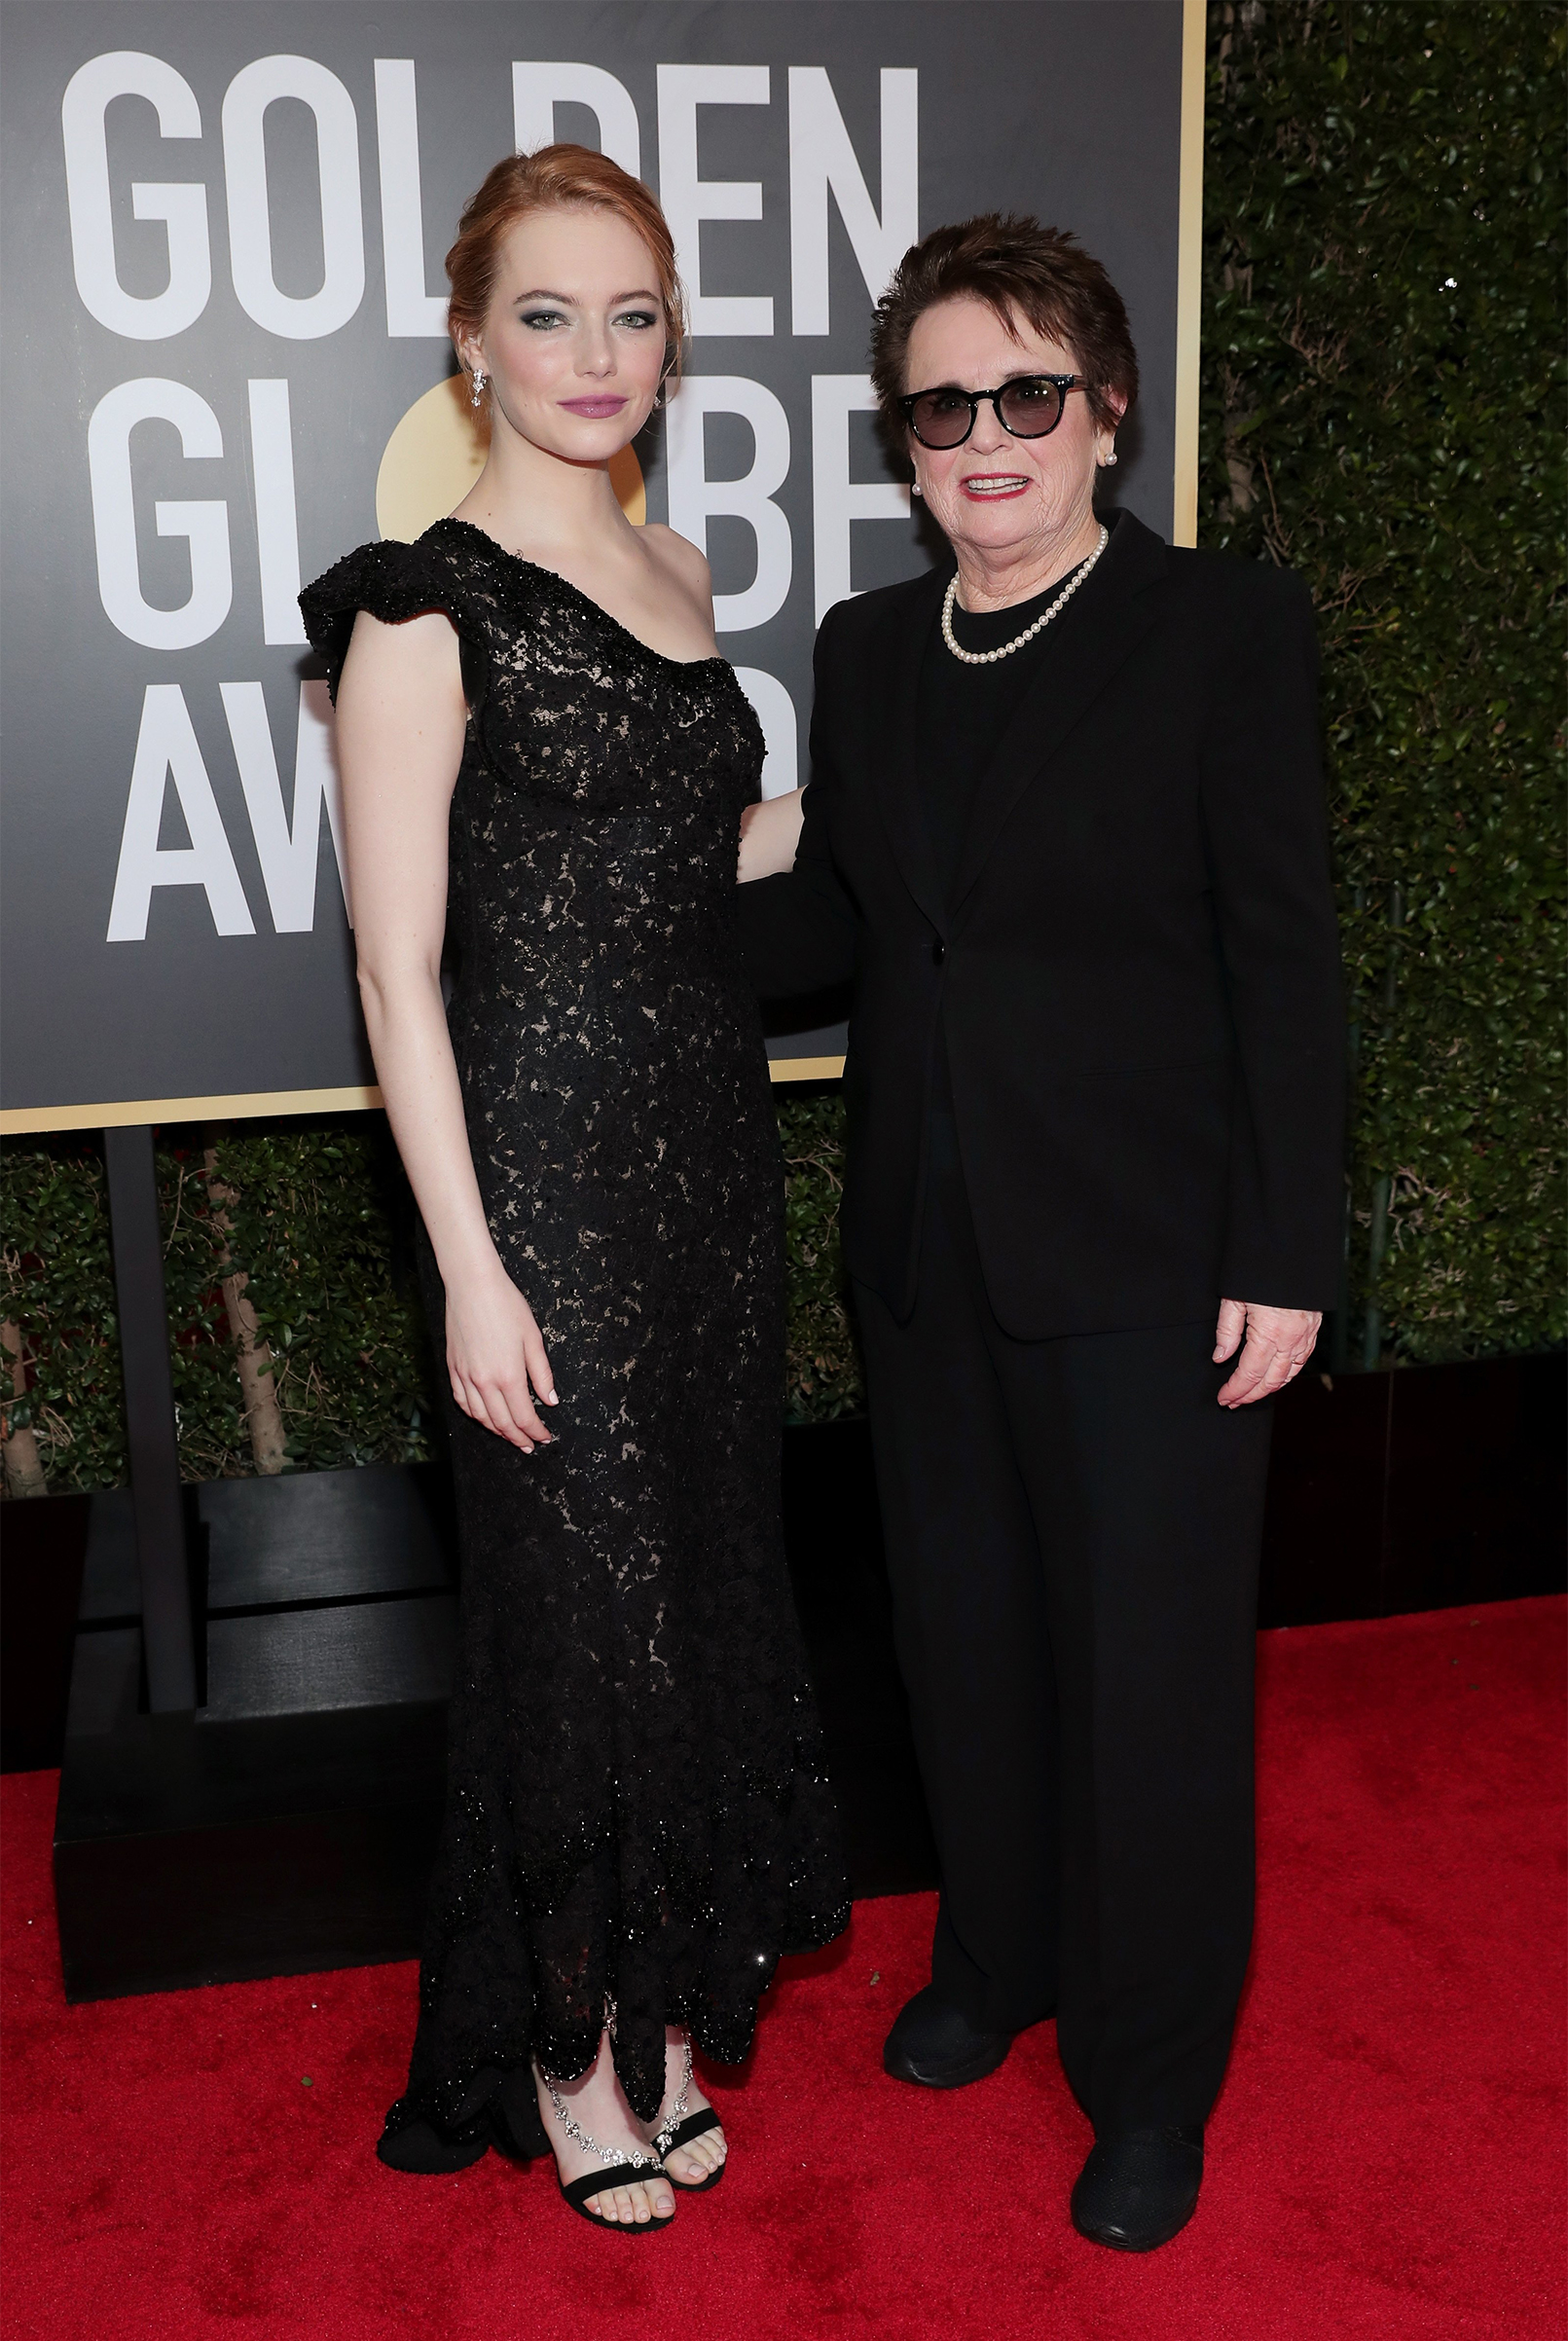 Actor Emma Stone and tennis player Billie Jean King arrive to the 75th Annual Golden Globe Awards held at the Beverly Hilton Hotel on Jan. 7, 2018.